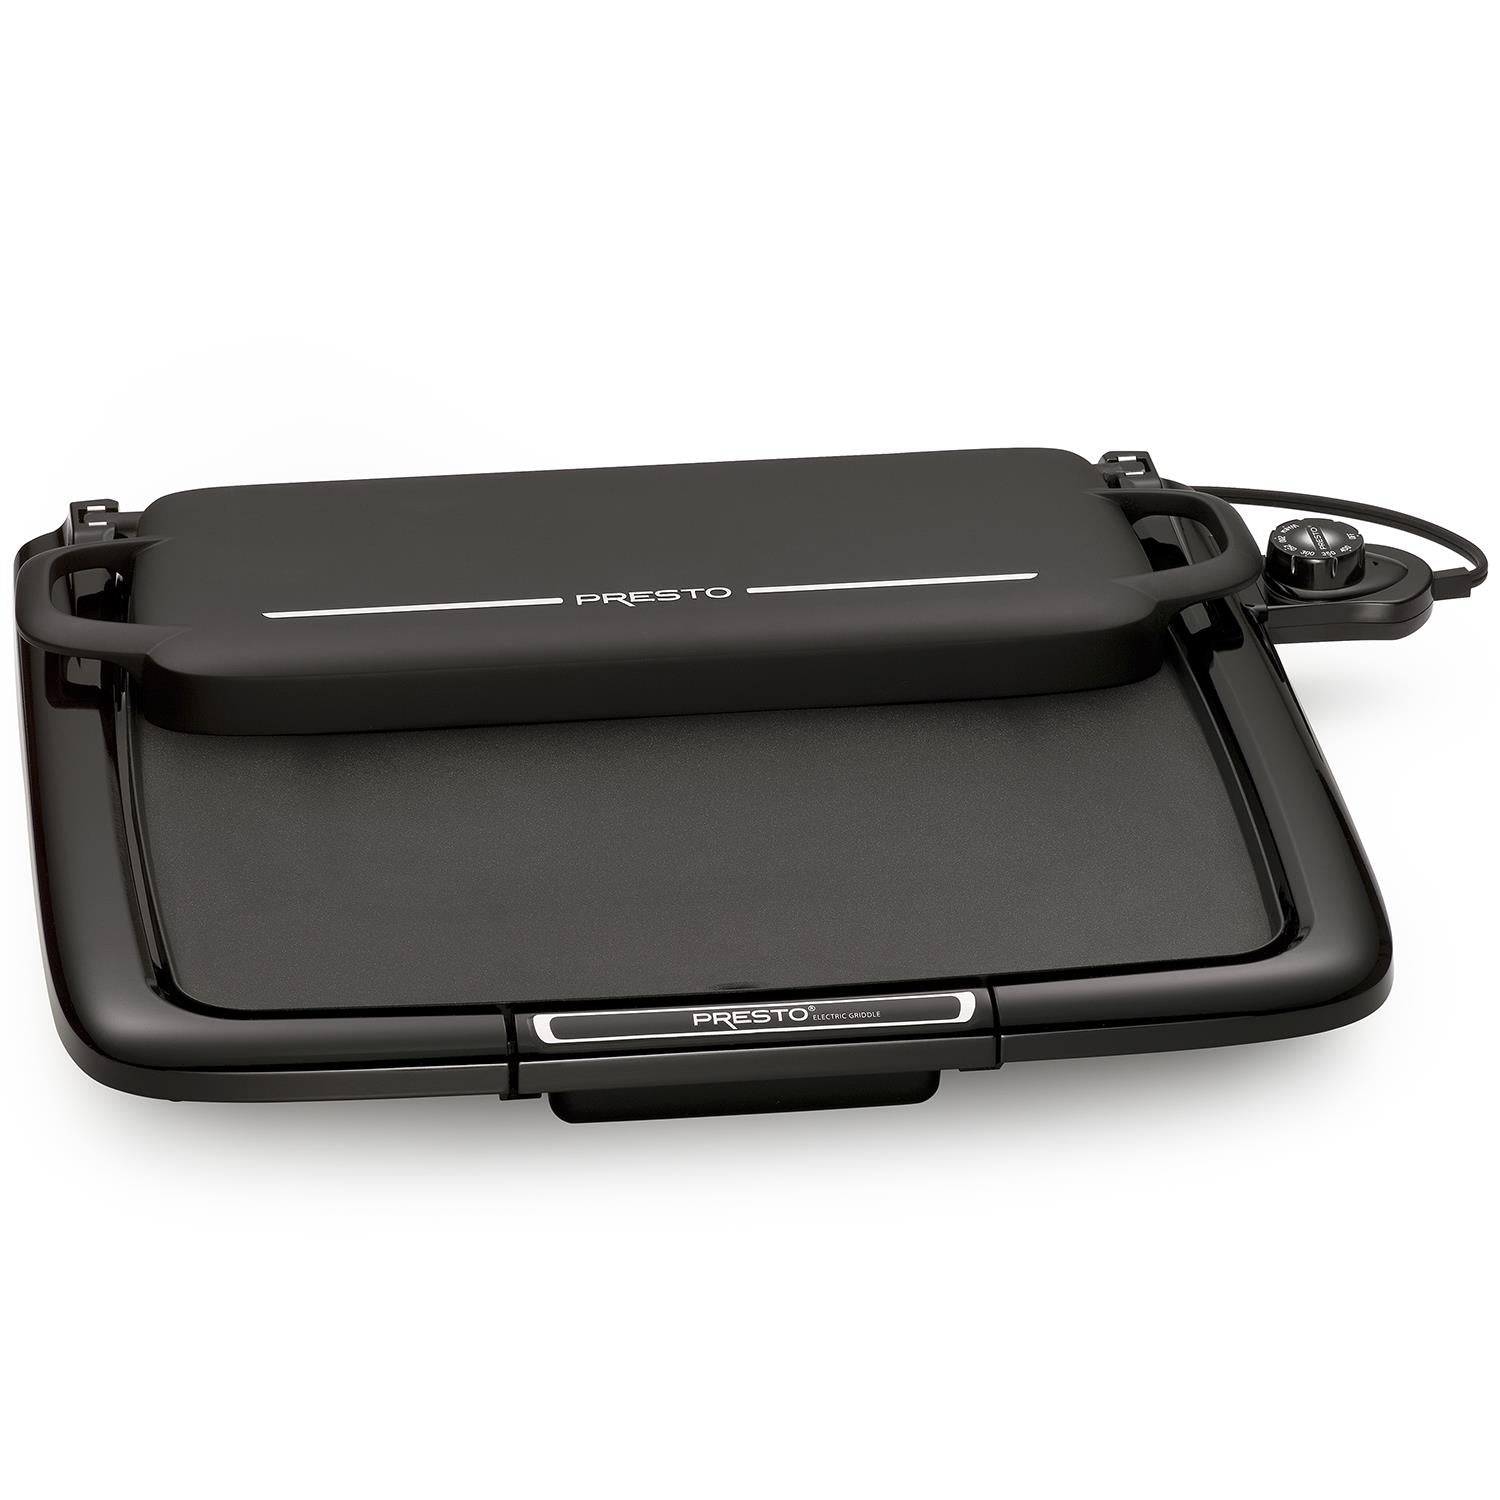 Presto - Cool-touch electric Griddle/Warmer Plus